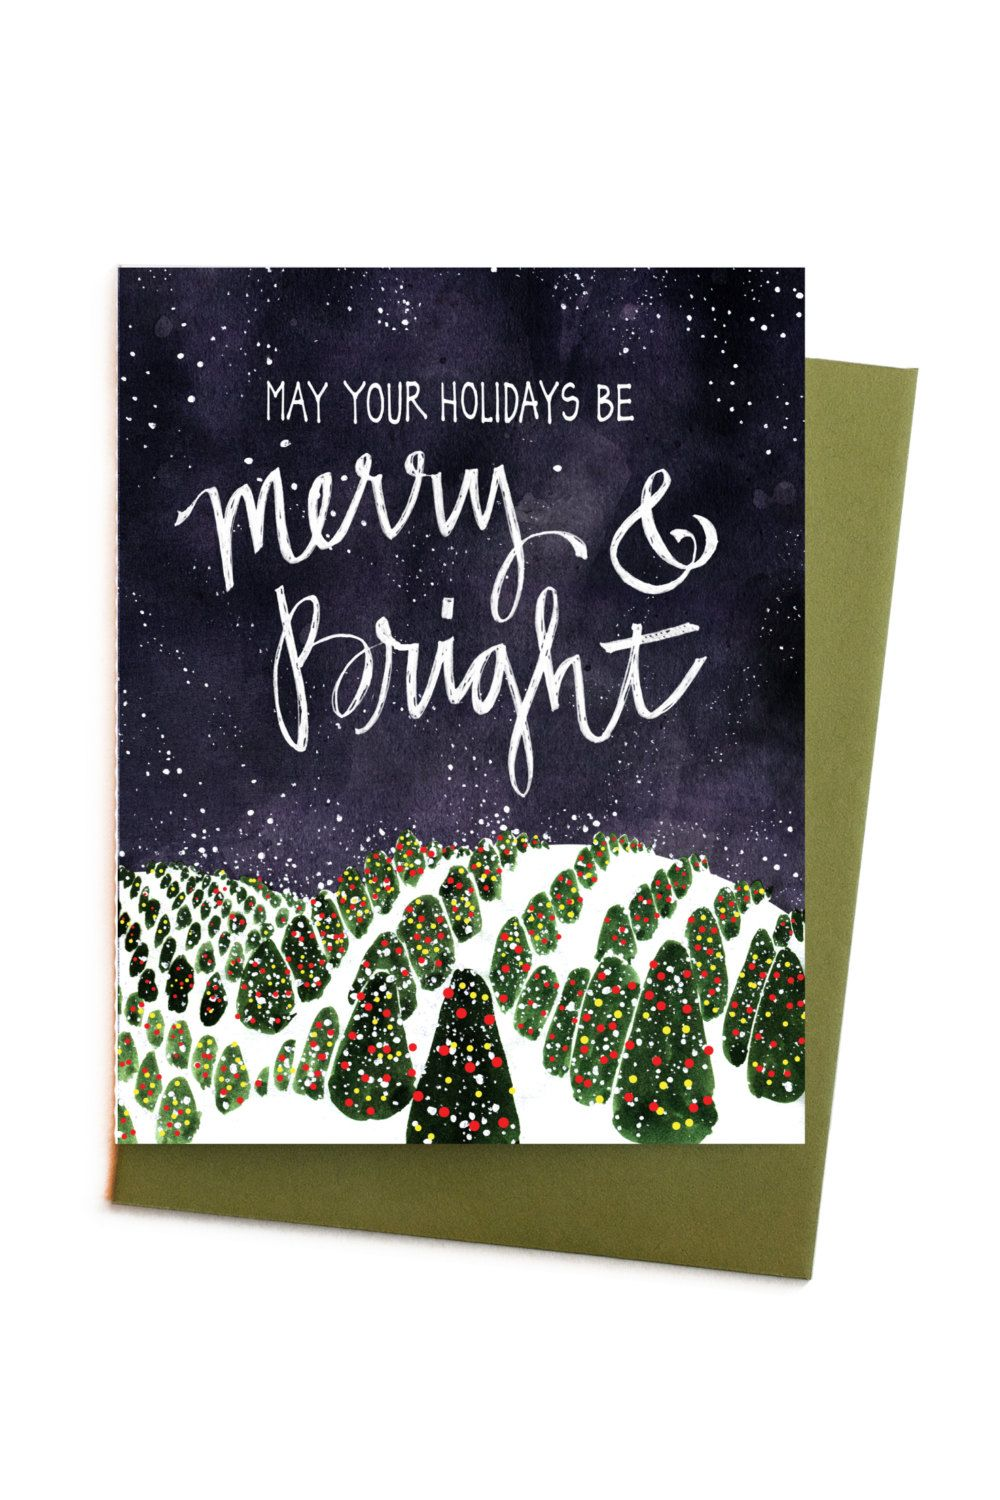 25 funny christmas card ideas family christmas card photos kristyandbryce Image collections